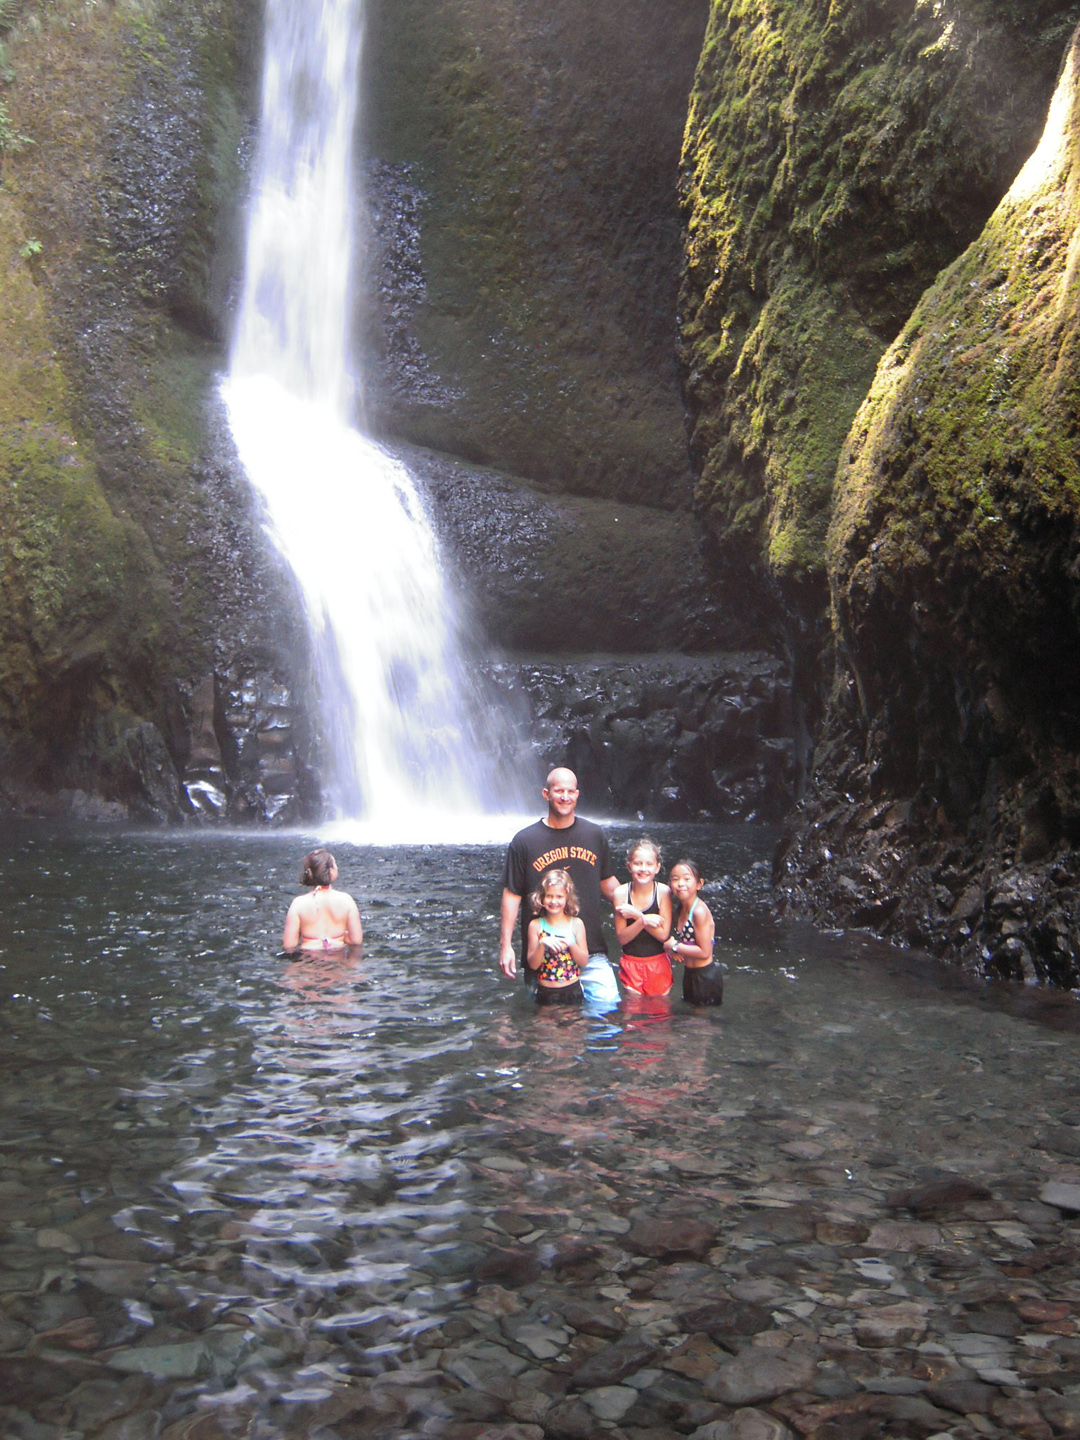 Little ones and Dad braving the cold Falls water.